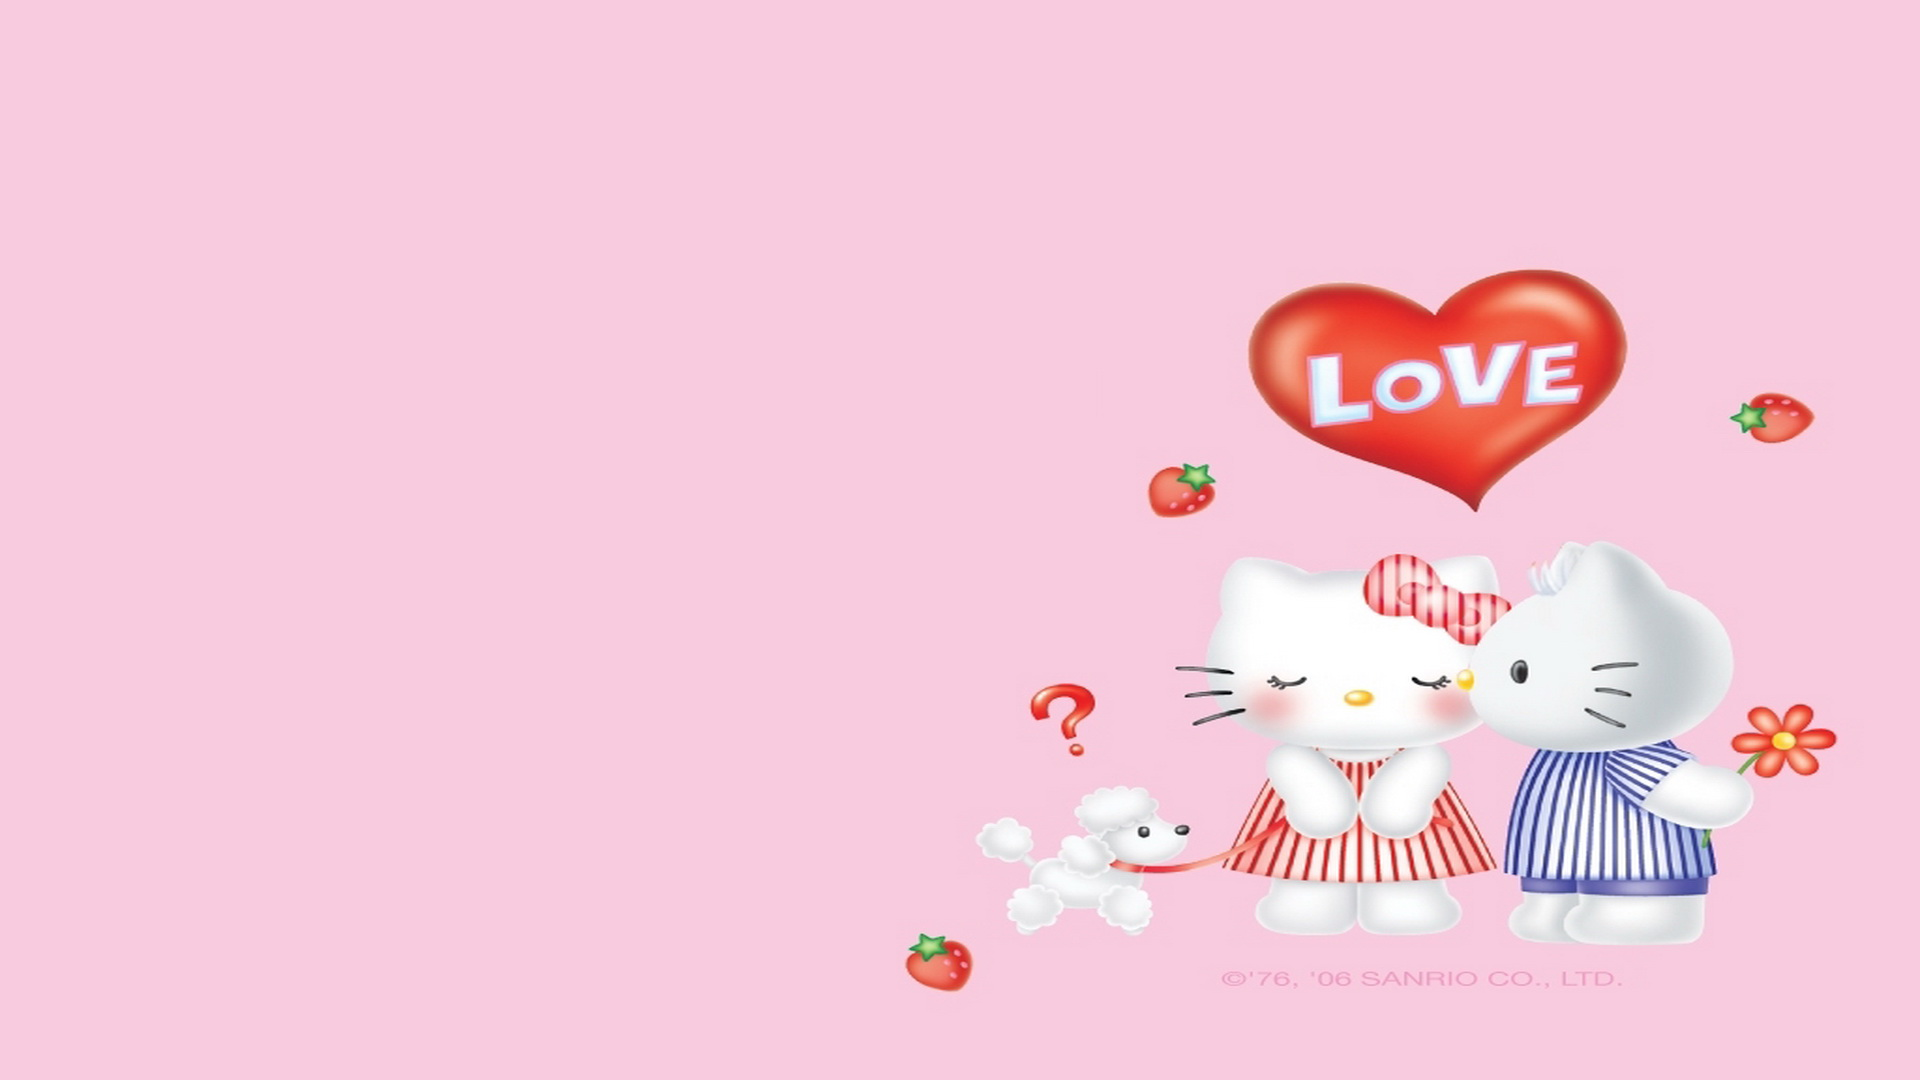 Beautiful Wallpaper Hello Kitty Love - rJtpdh  Collection_15131.jpg